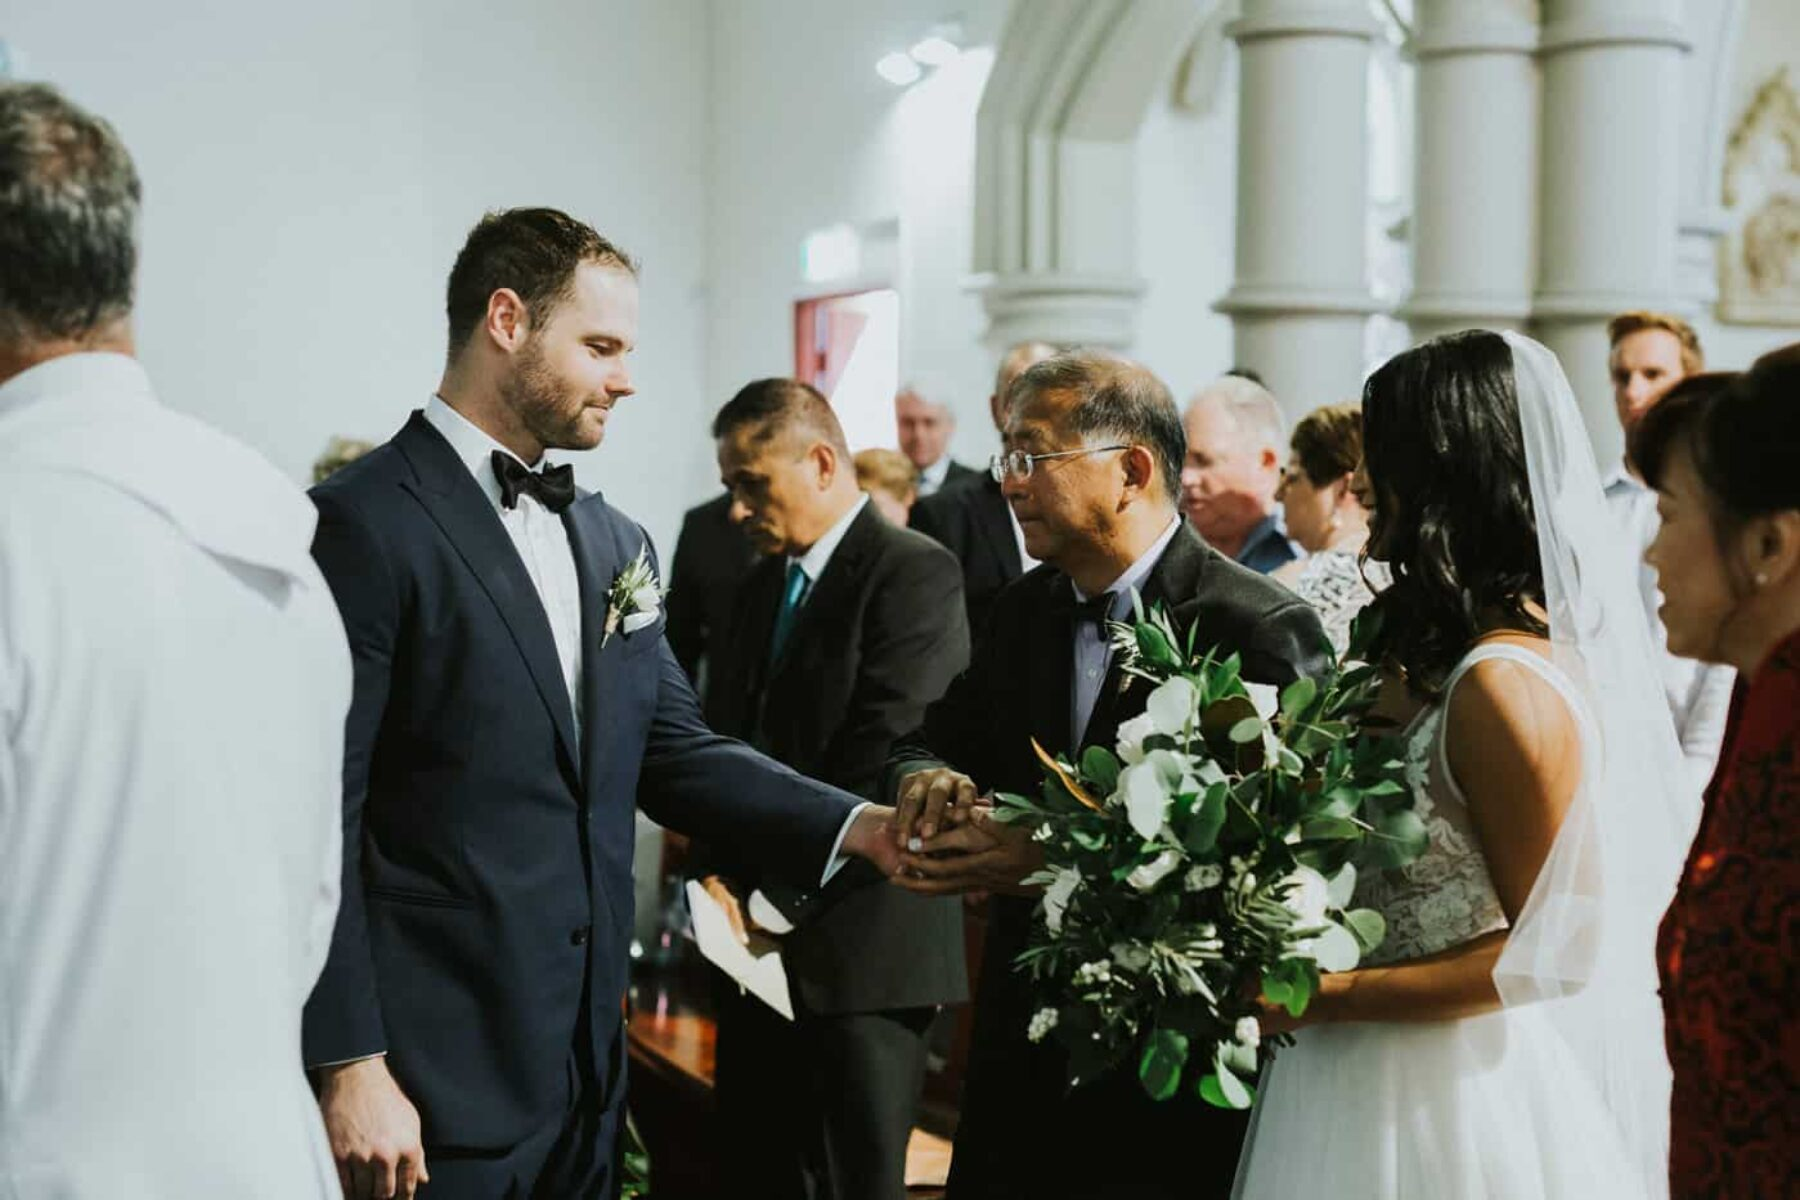 Sydney church wedding at Our Lady of the Sacred Heart, Randwick